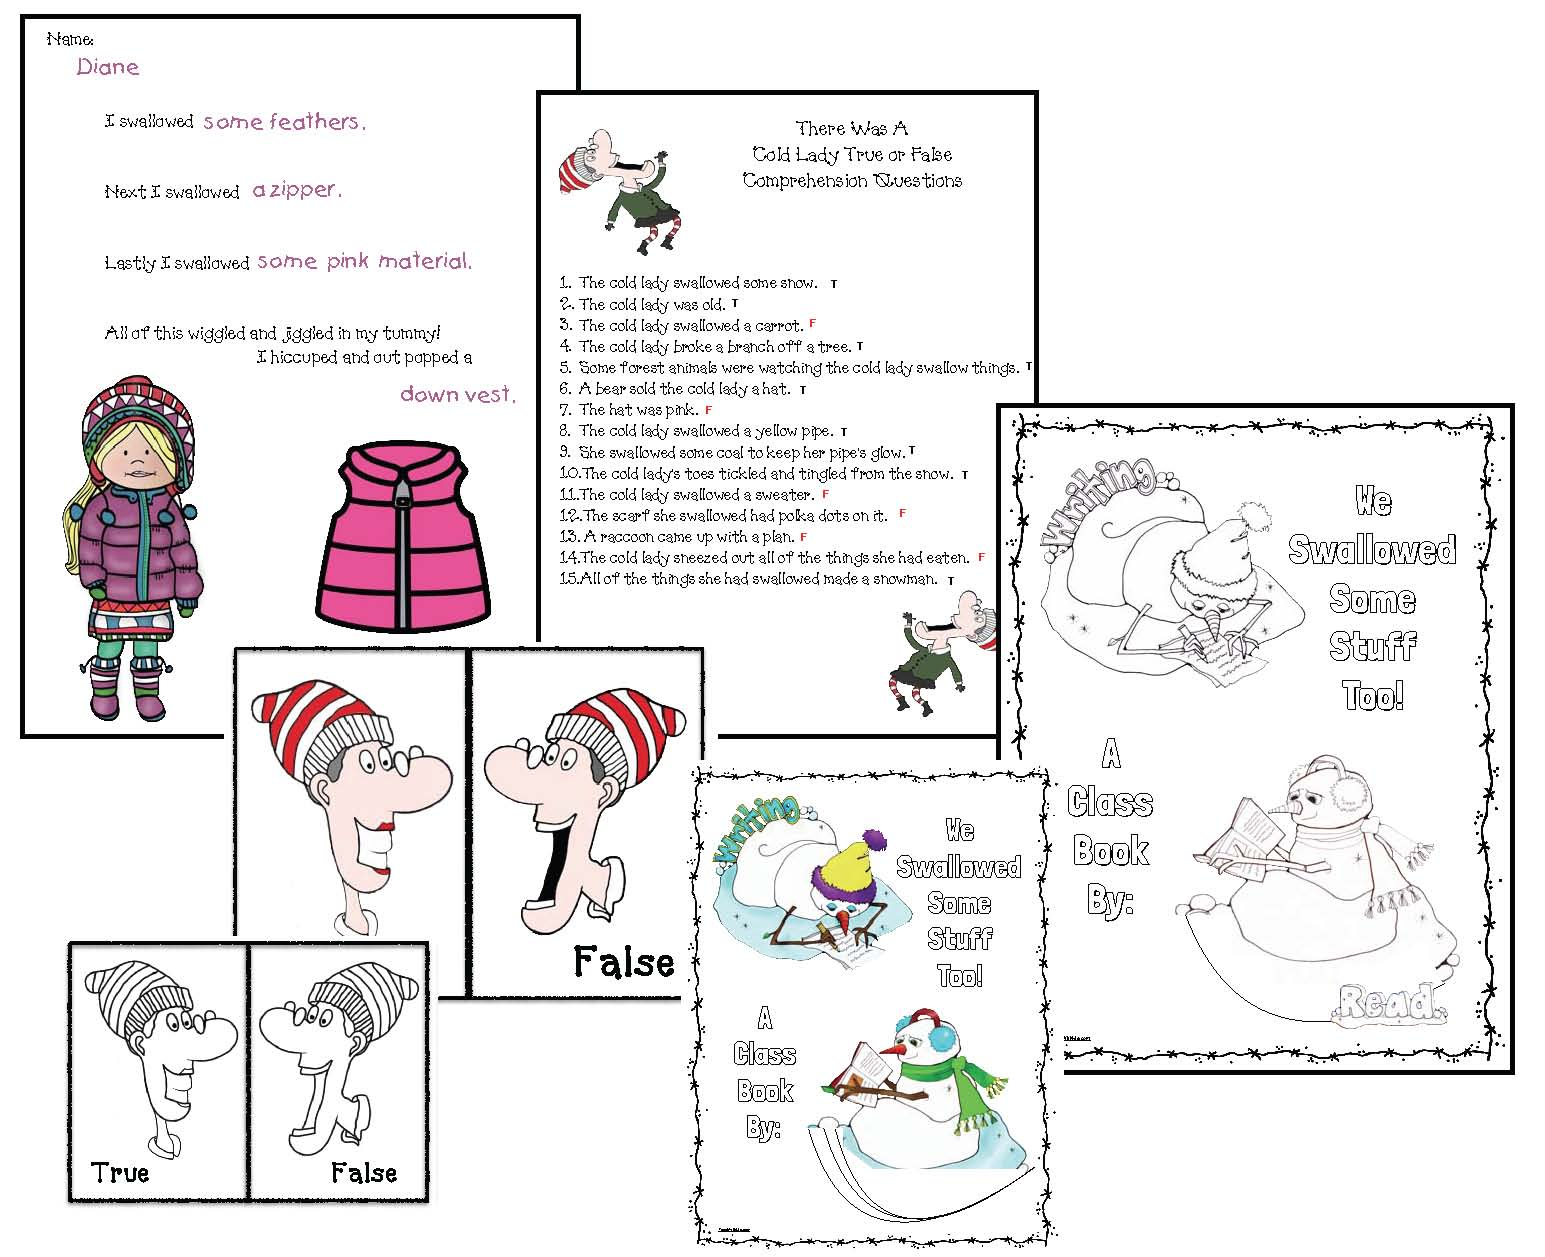 activities for there was a cold lady who swallowed some snow, activities for winter books, sequencing a story activities, retelling a story activities, common core standards for there was a cold lady who swallowed some snow, favorite winter books